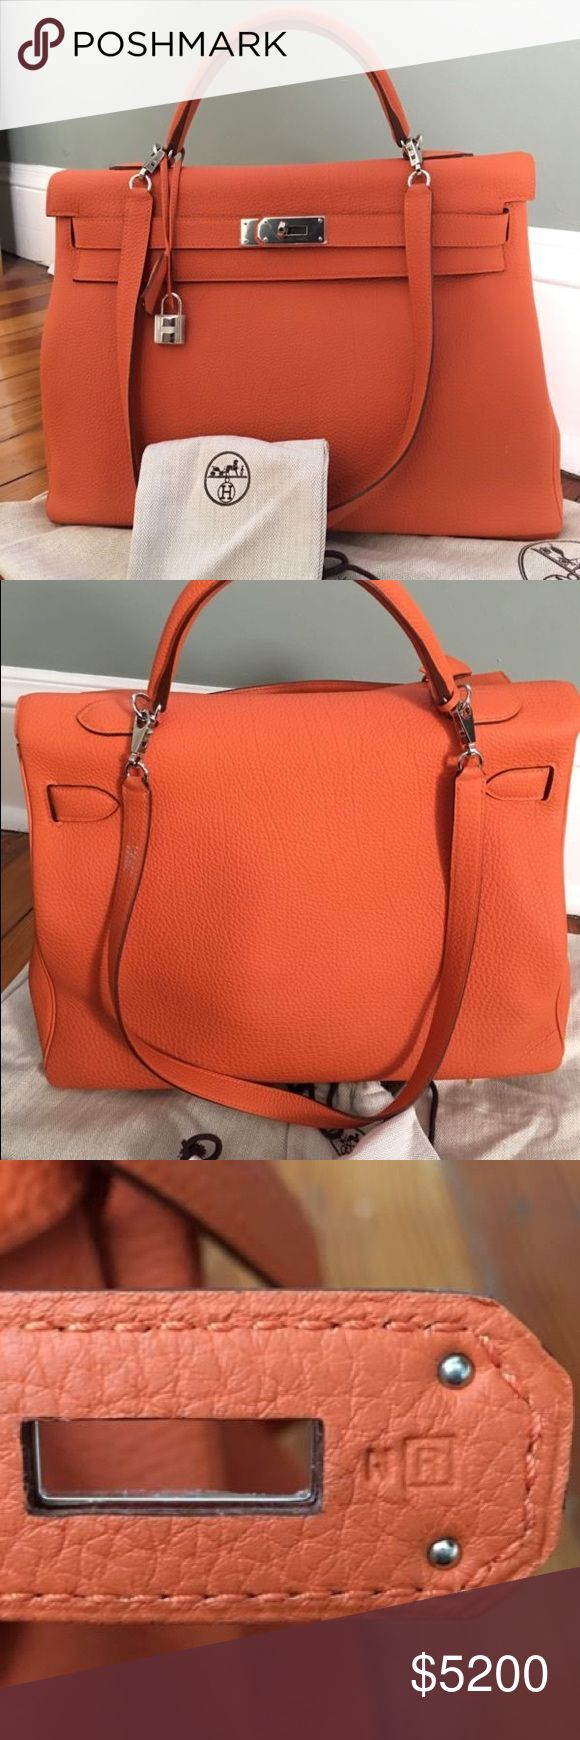 KELLY BIRKIN 40 CM! 100% Authentic. Beautiful for spring. Worn 2-3 times. 100% authentic, comes with box, and dustbag.price is negotiable off of posh and on M. Hermes Bags